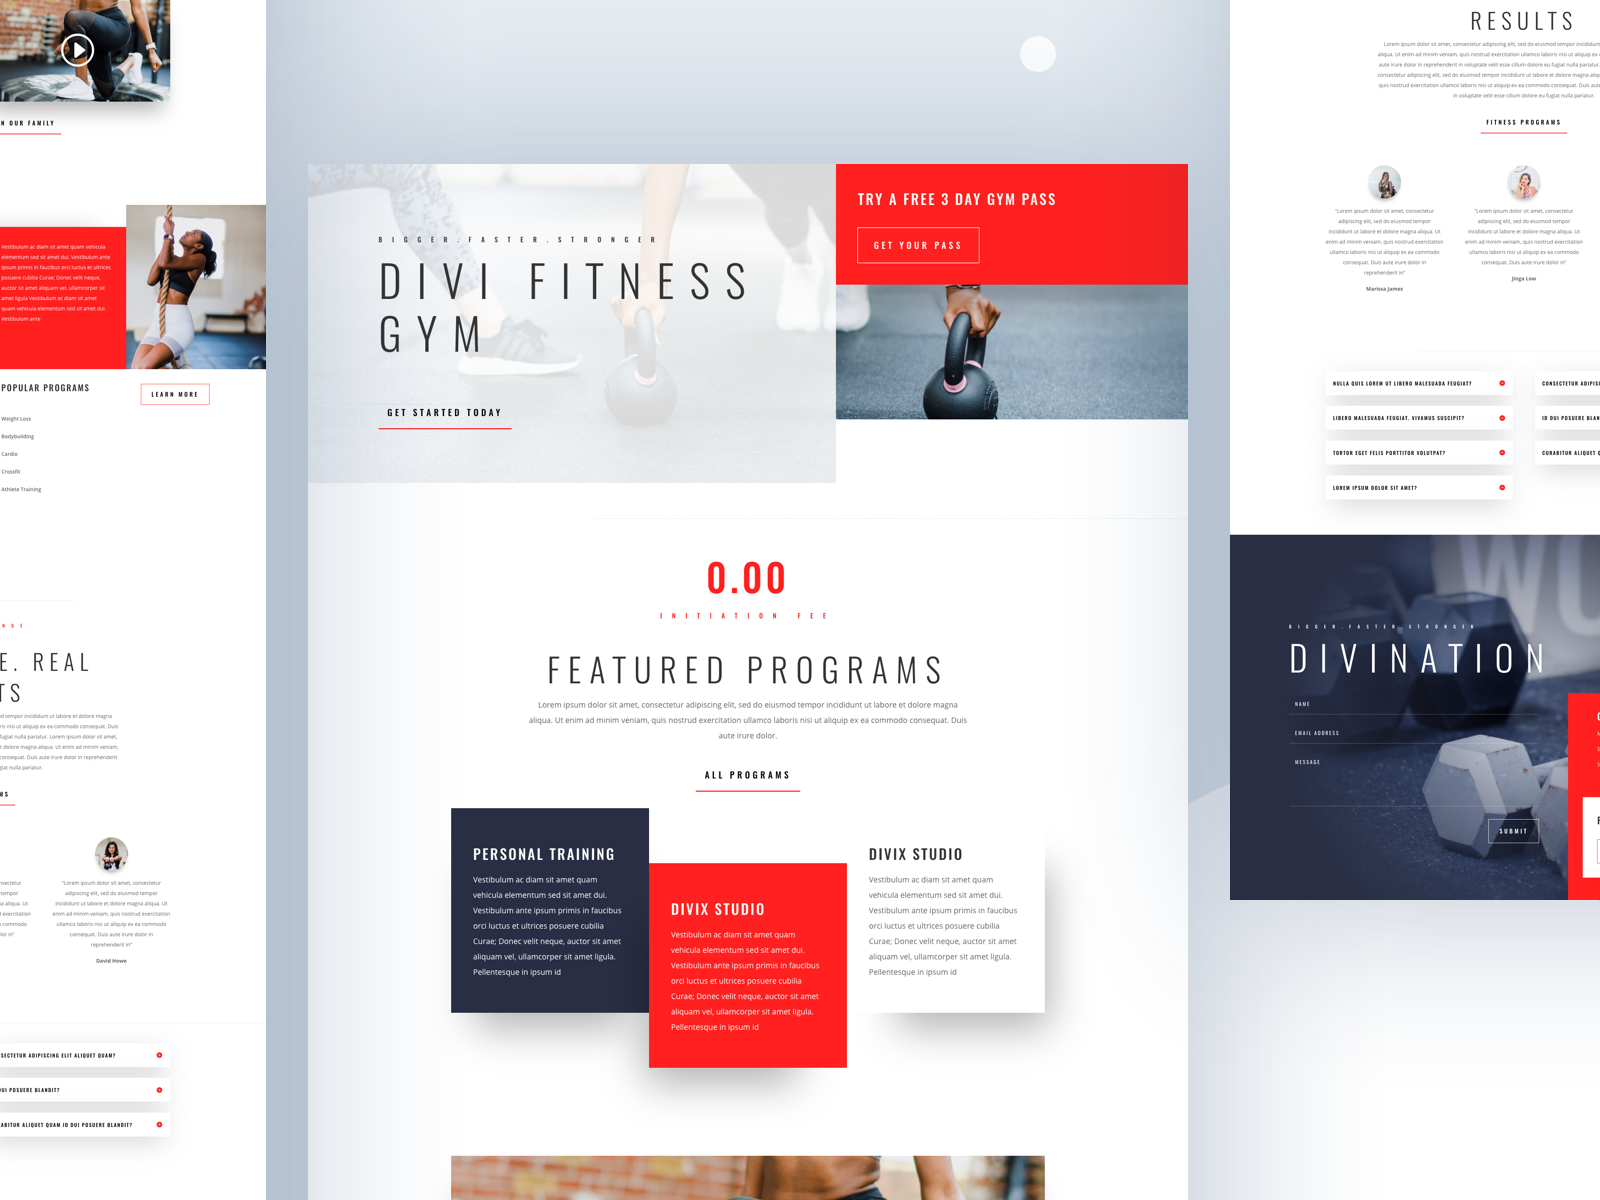 Fitness Gym Template Design For Divi Gym Workouts Template Design Gym